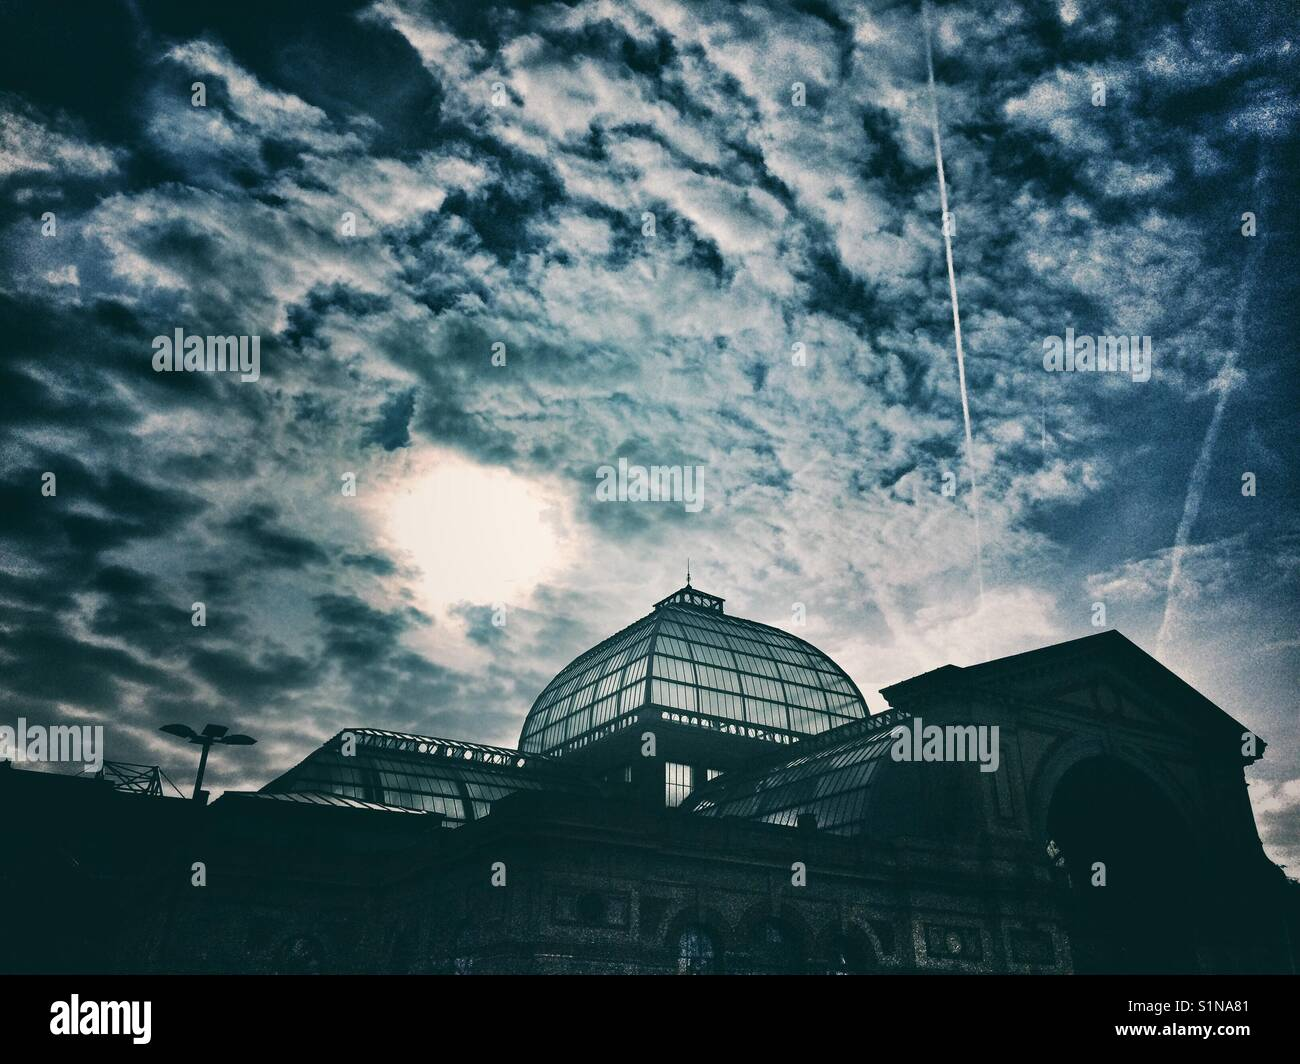 Alexandra Palace, London, UK - Stock Image